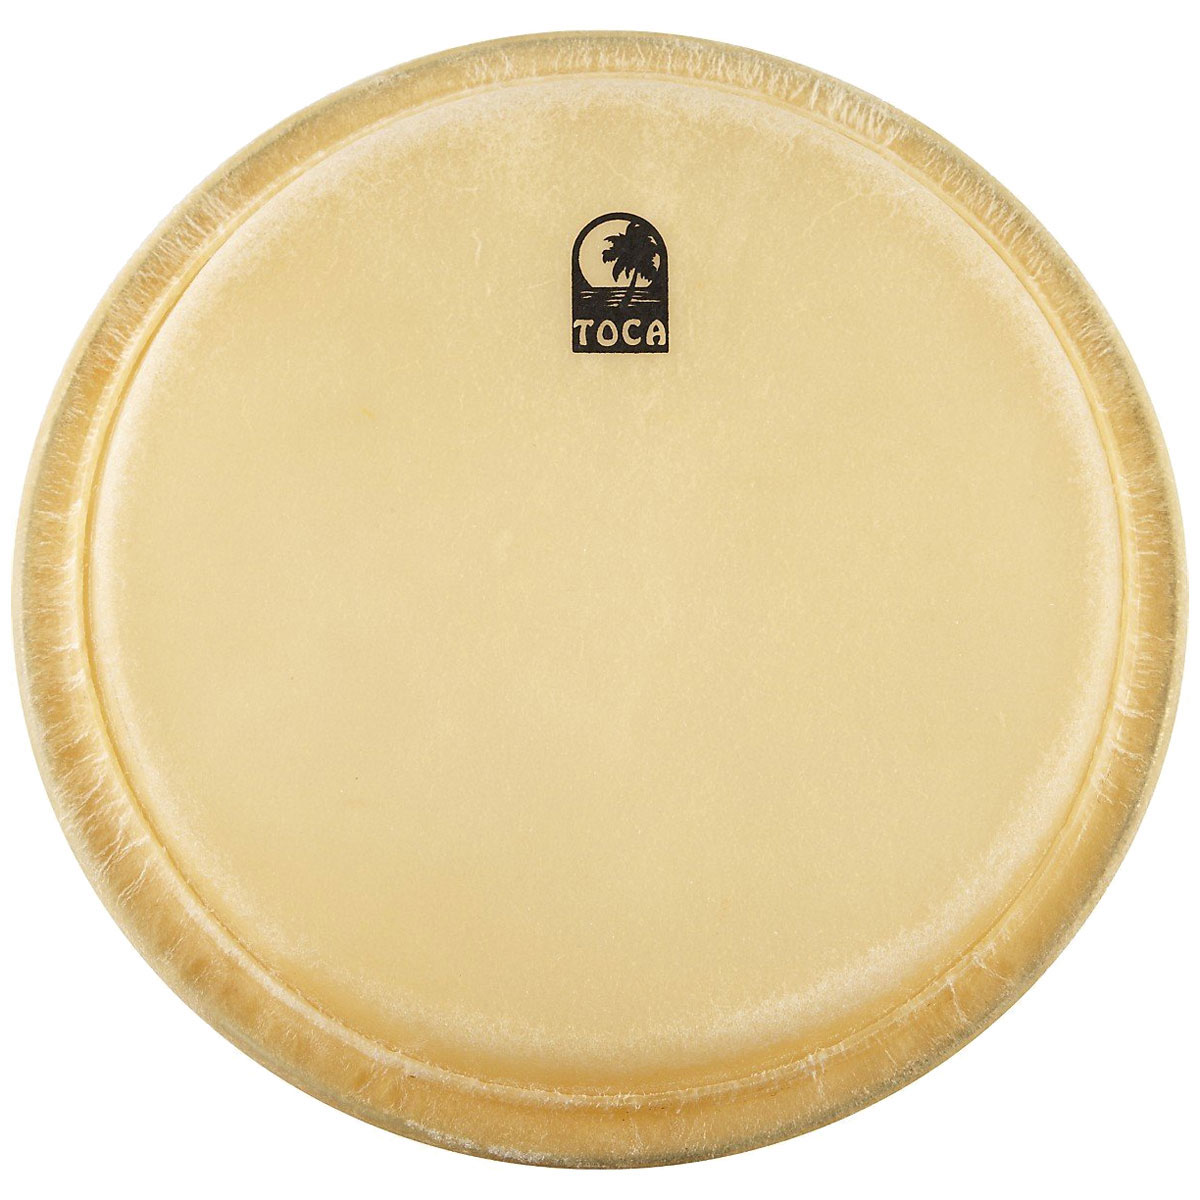 "Toca 11"" Synergy Rawhide Conga Drum Head"